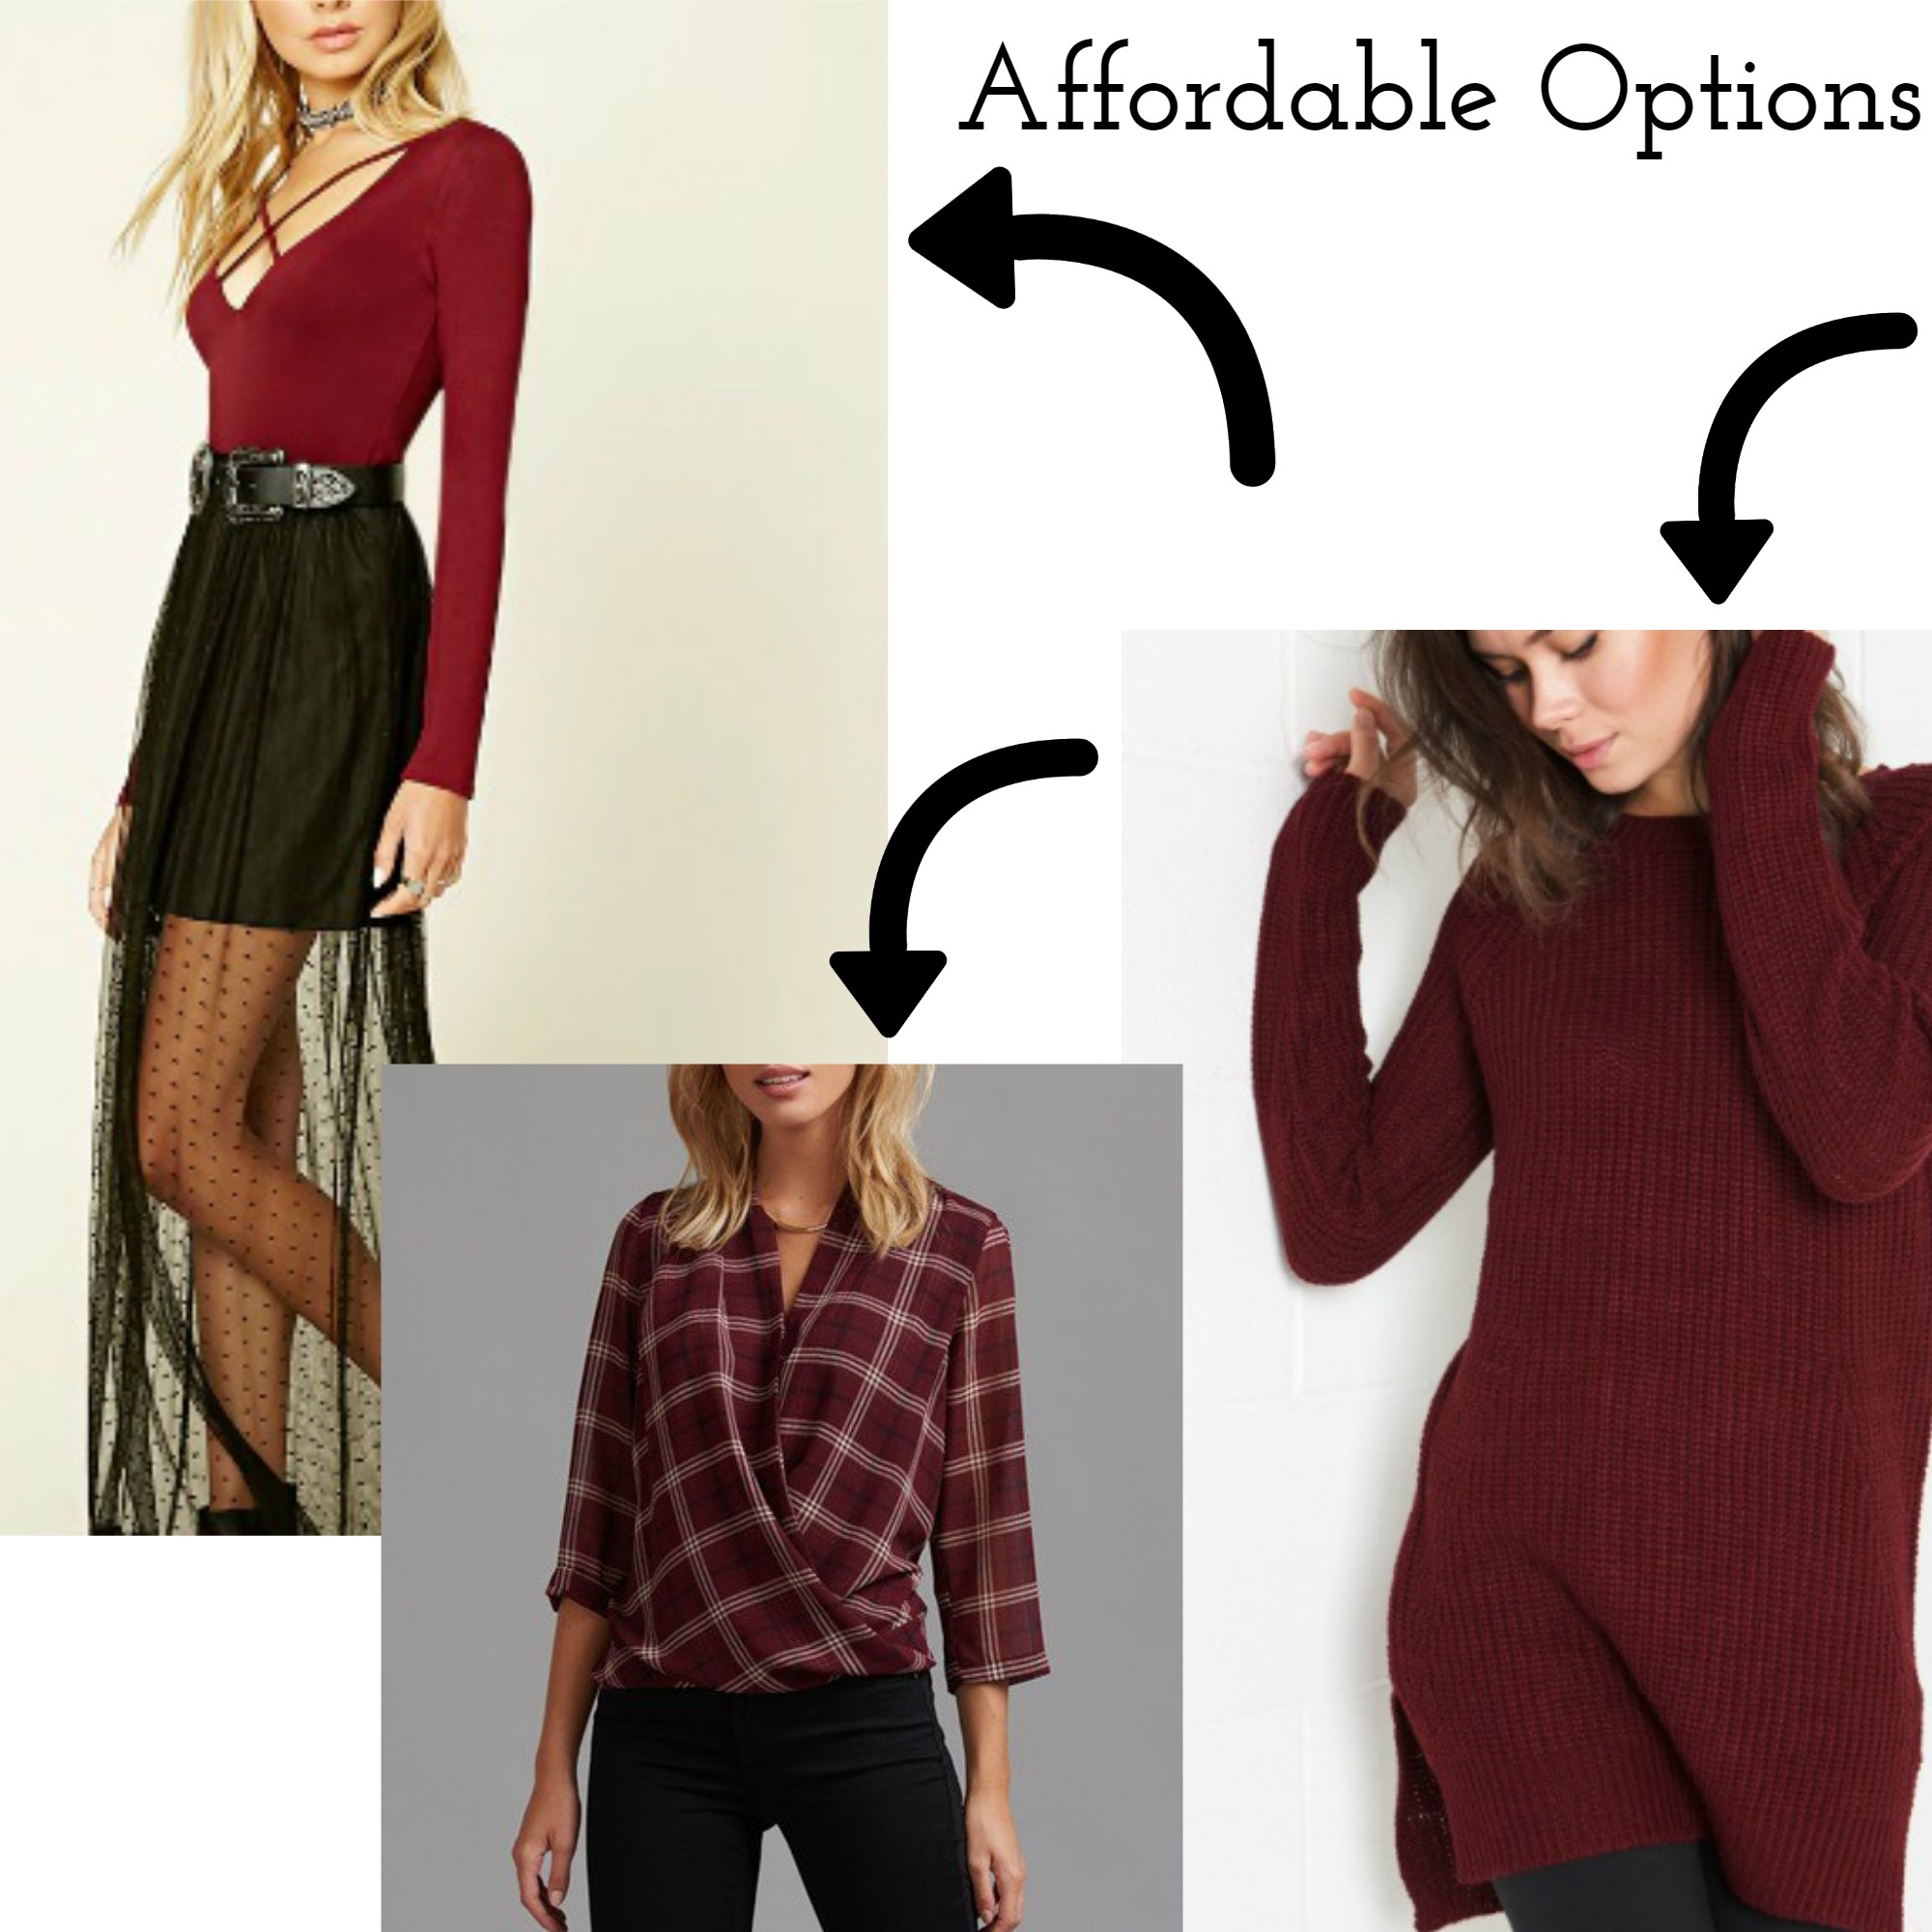 Affordable Pieces: Source  Top  |  Right  |  Left